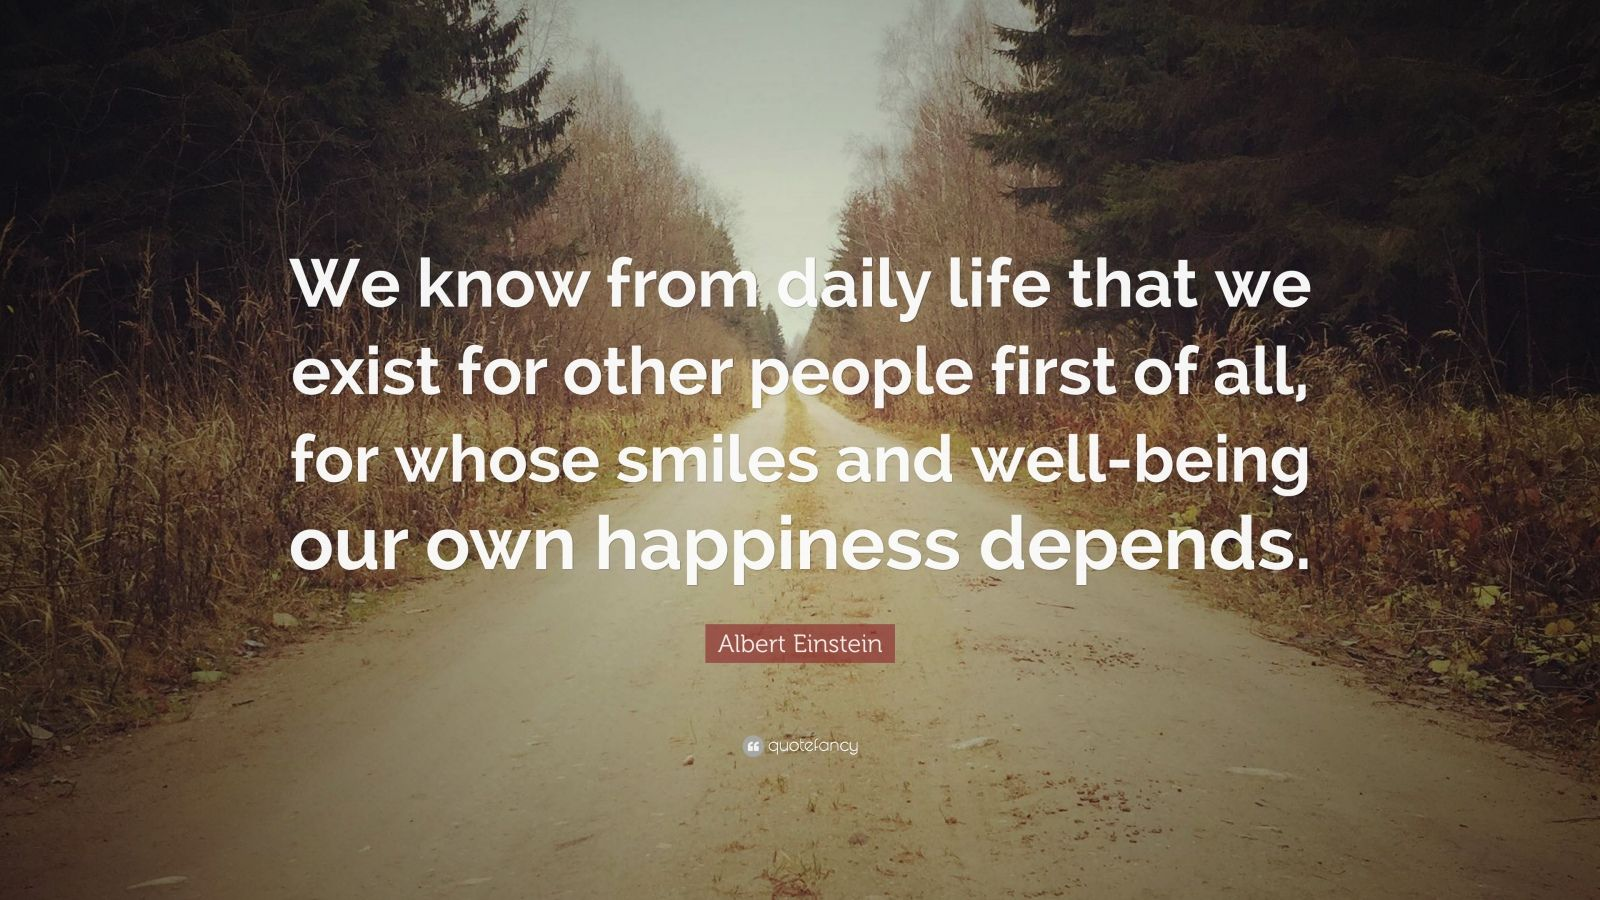 """Albert Einstein Quote: """"We know from daily life that we exist for other people first of all, for whose smiles and well-being our own happiness depends."""""""